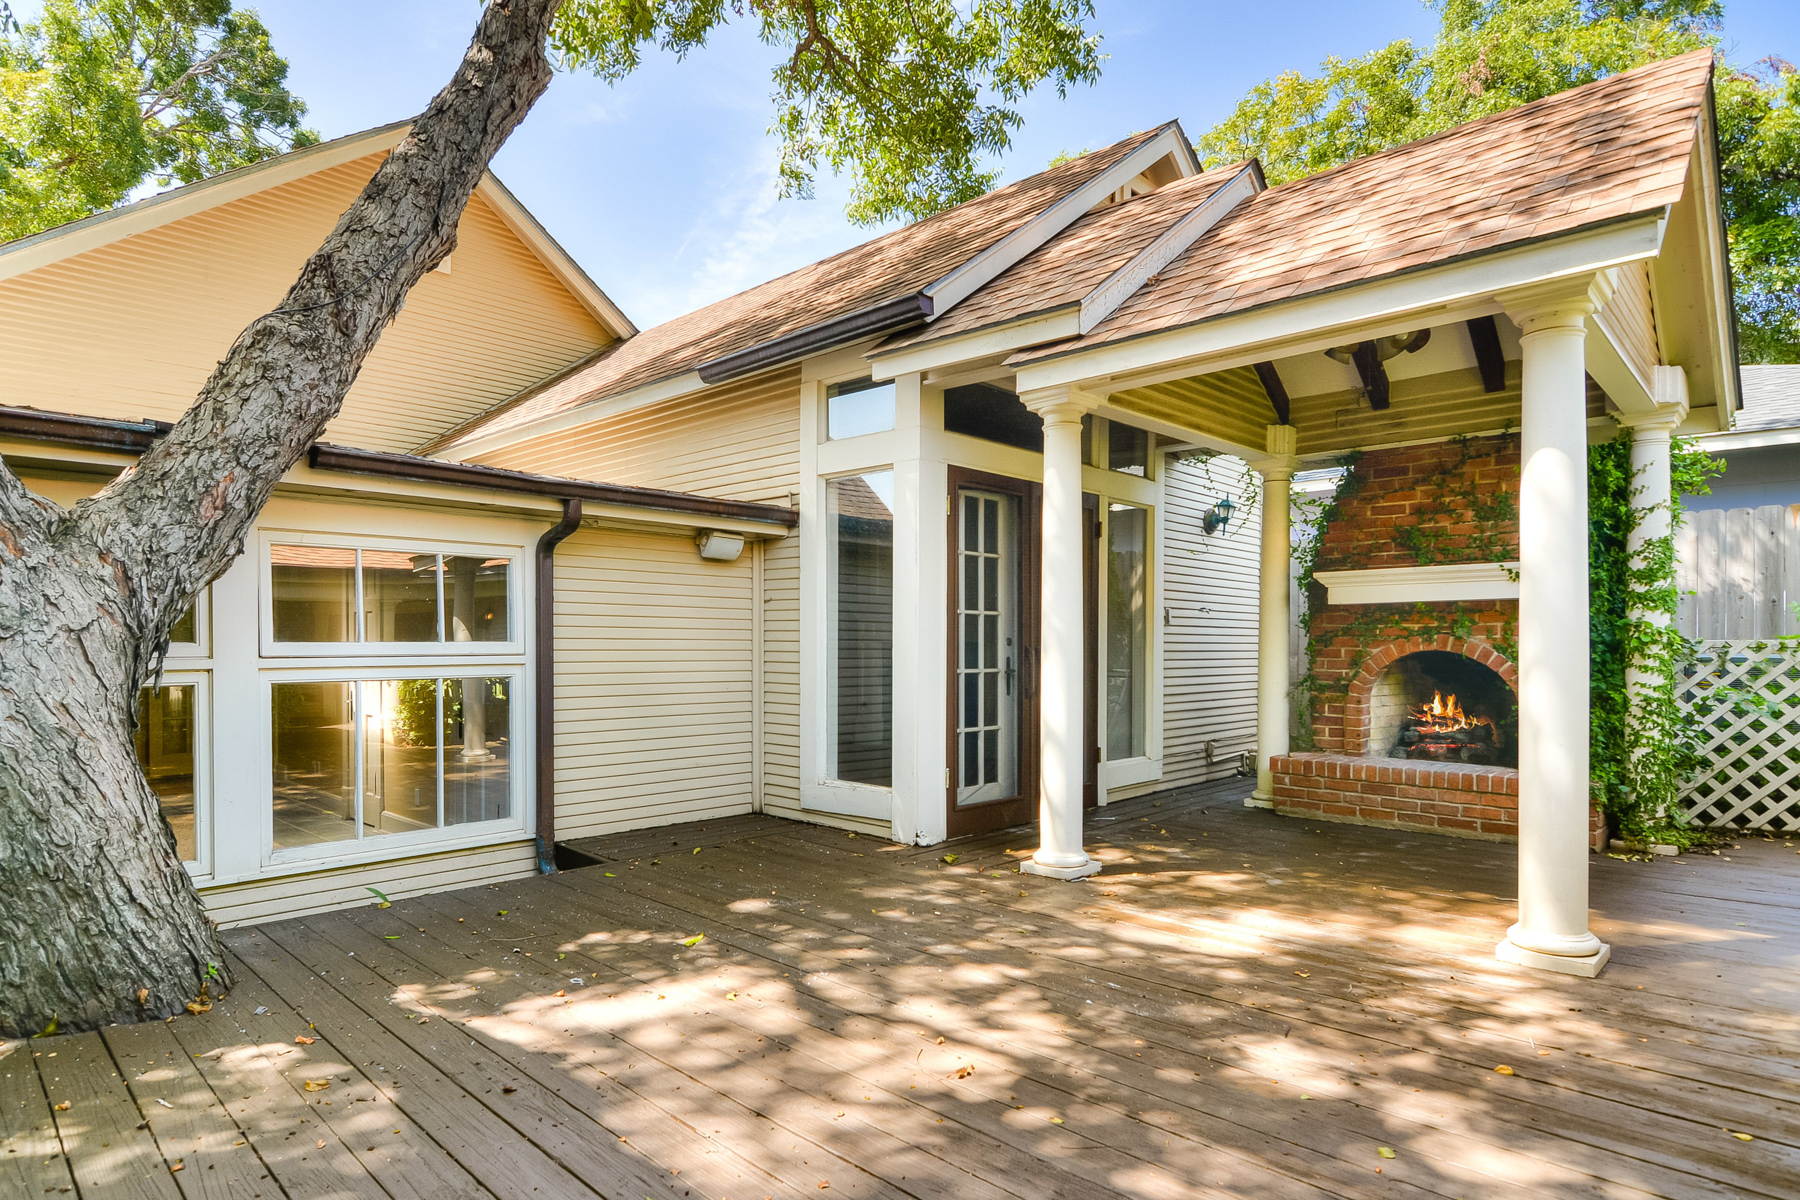 Additional photo for property listing at Charming Cottage in Alamo Heights 331 Argo Ave San Antonio, Texas 78209 Estados Unidos